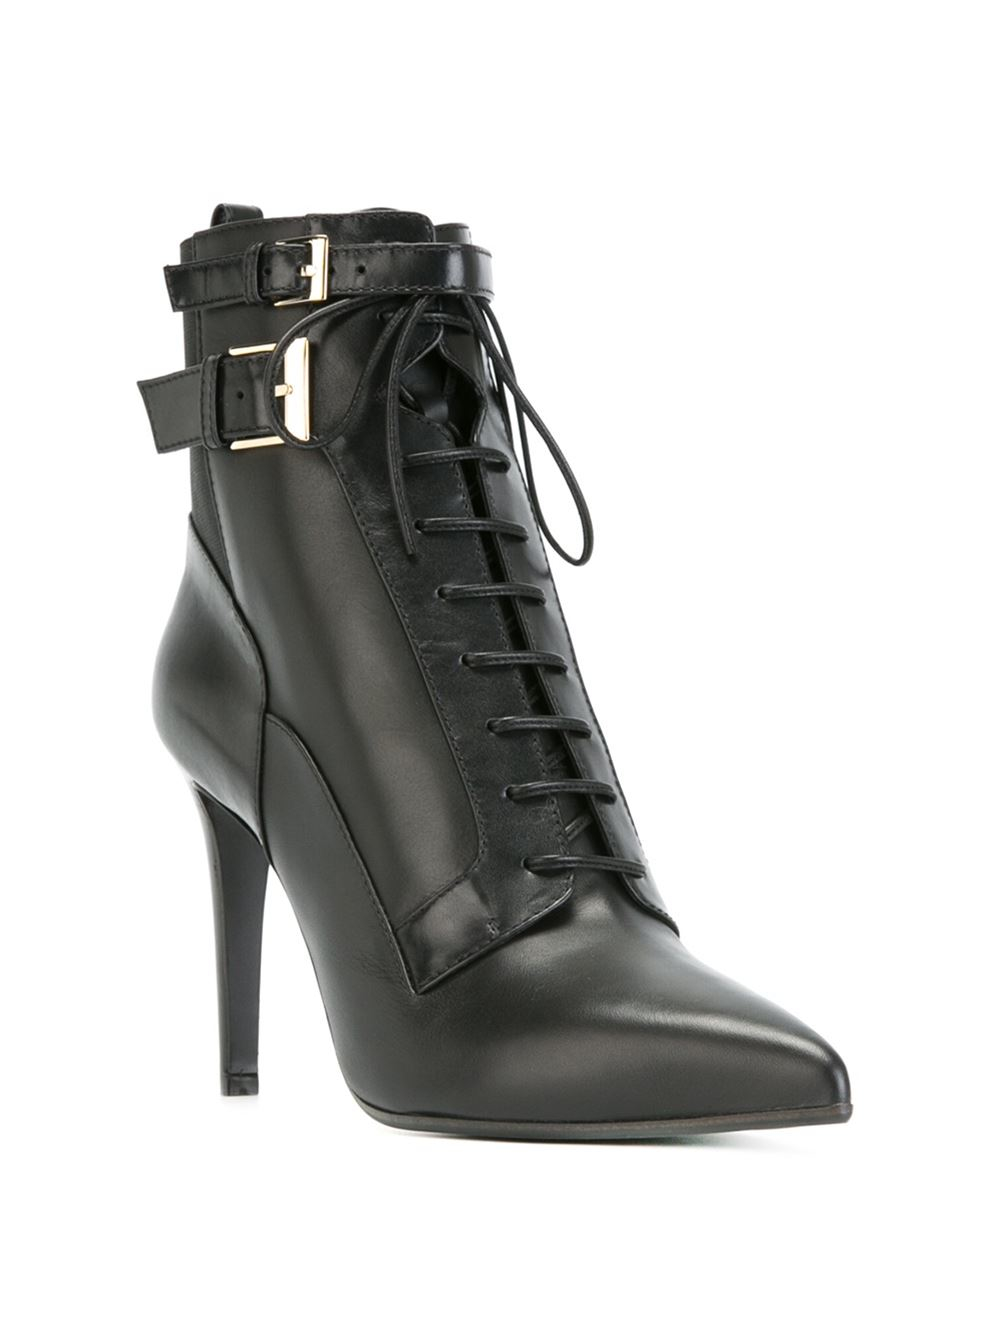 Black Lace Up High Heel Boots